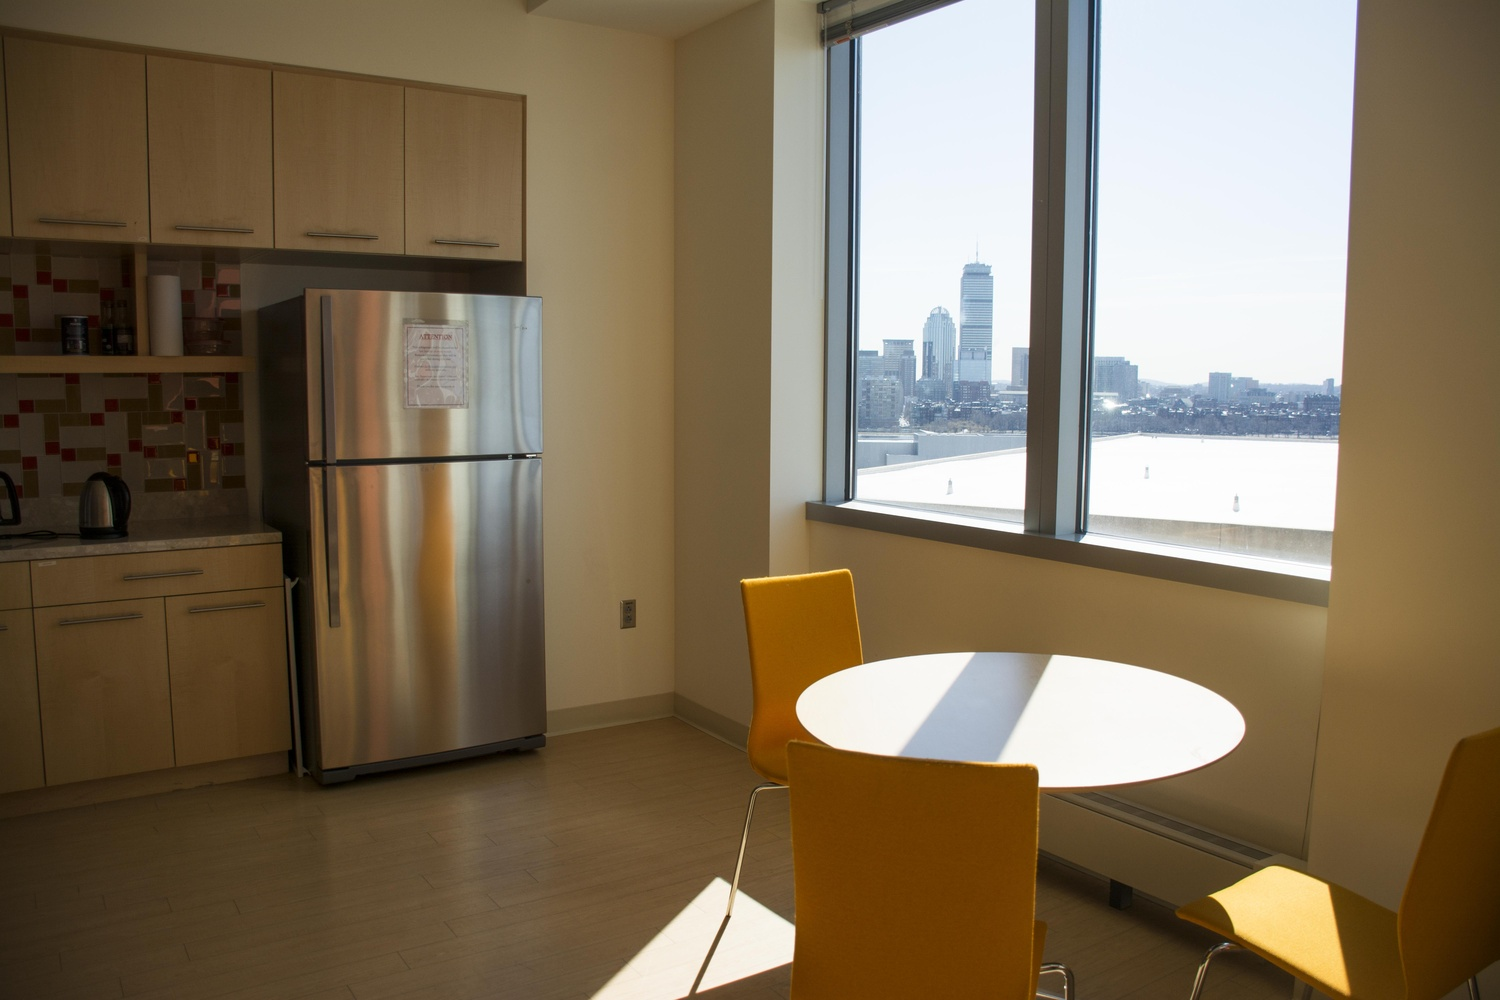 The kitchen where Zhang and his team eat their takeout meals has broad views of the Boston skyline.